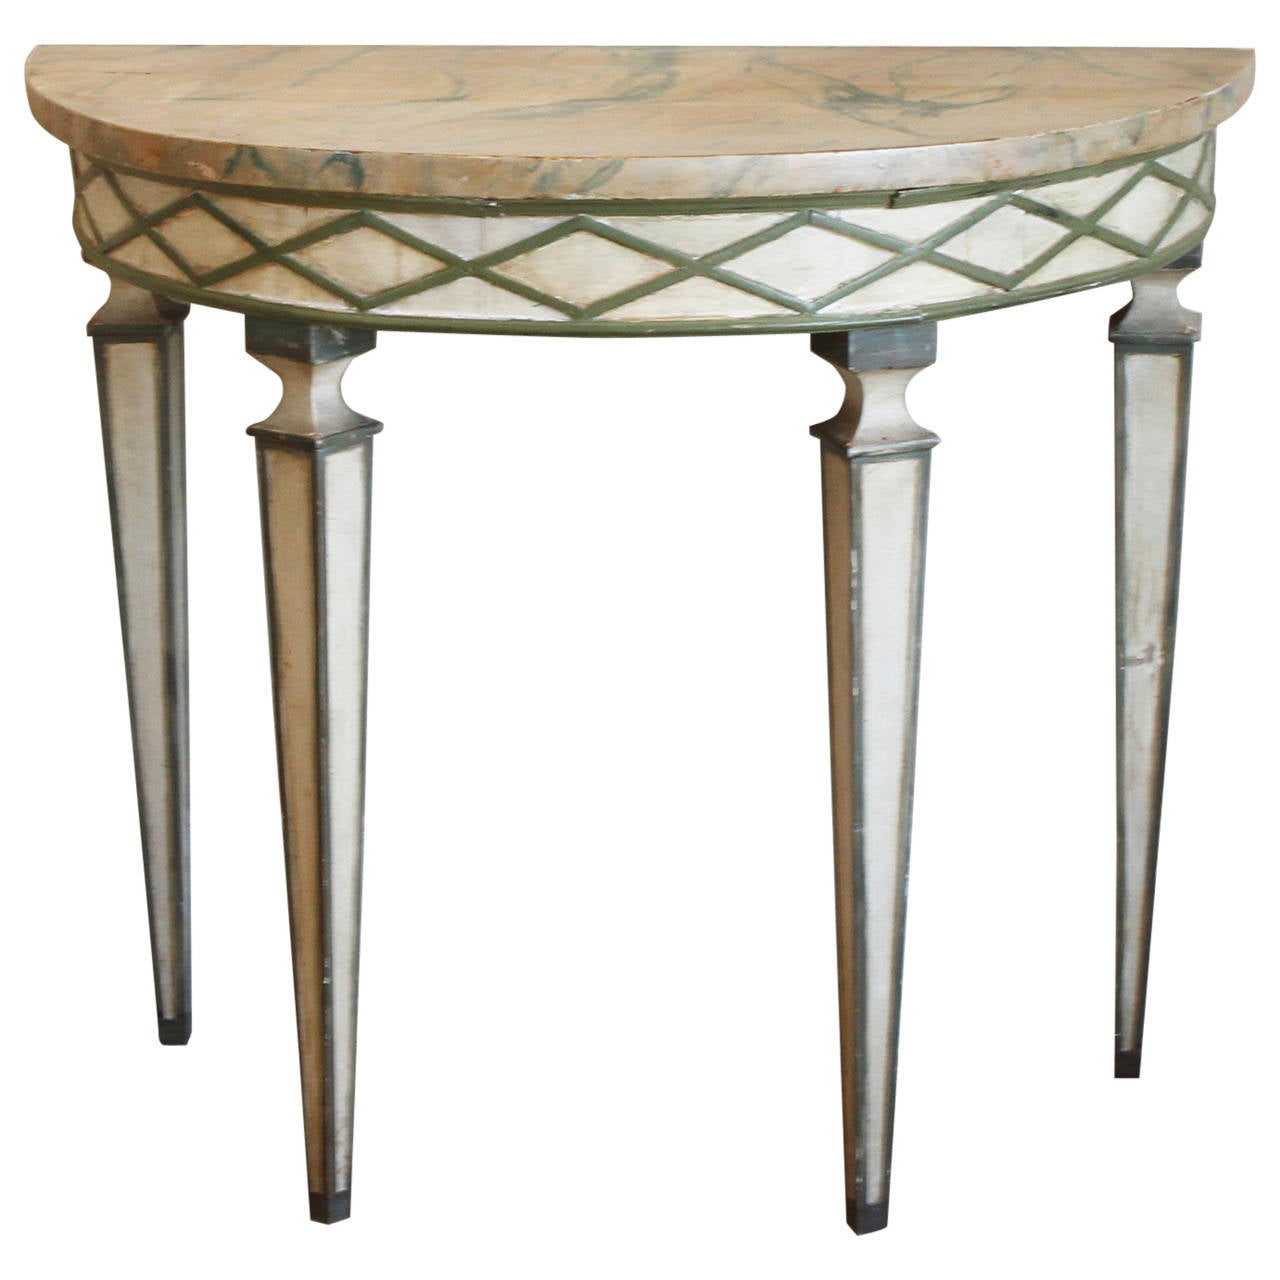 italian paint decorated demilune console table at 1stdibs. Black Bedroom Furniture Sets. Home Design Ideas